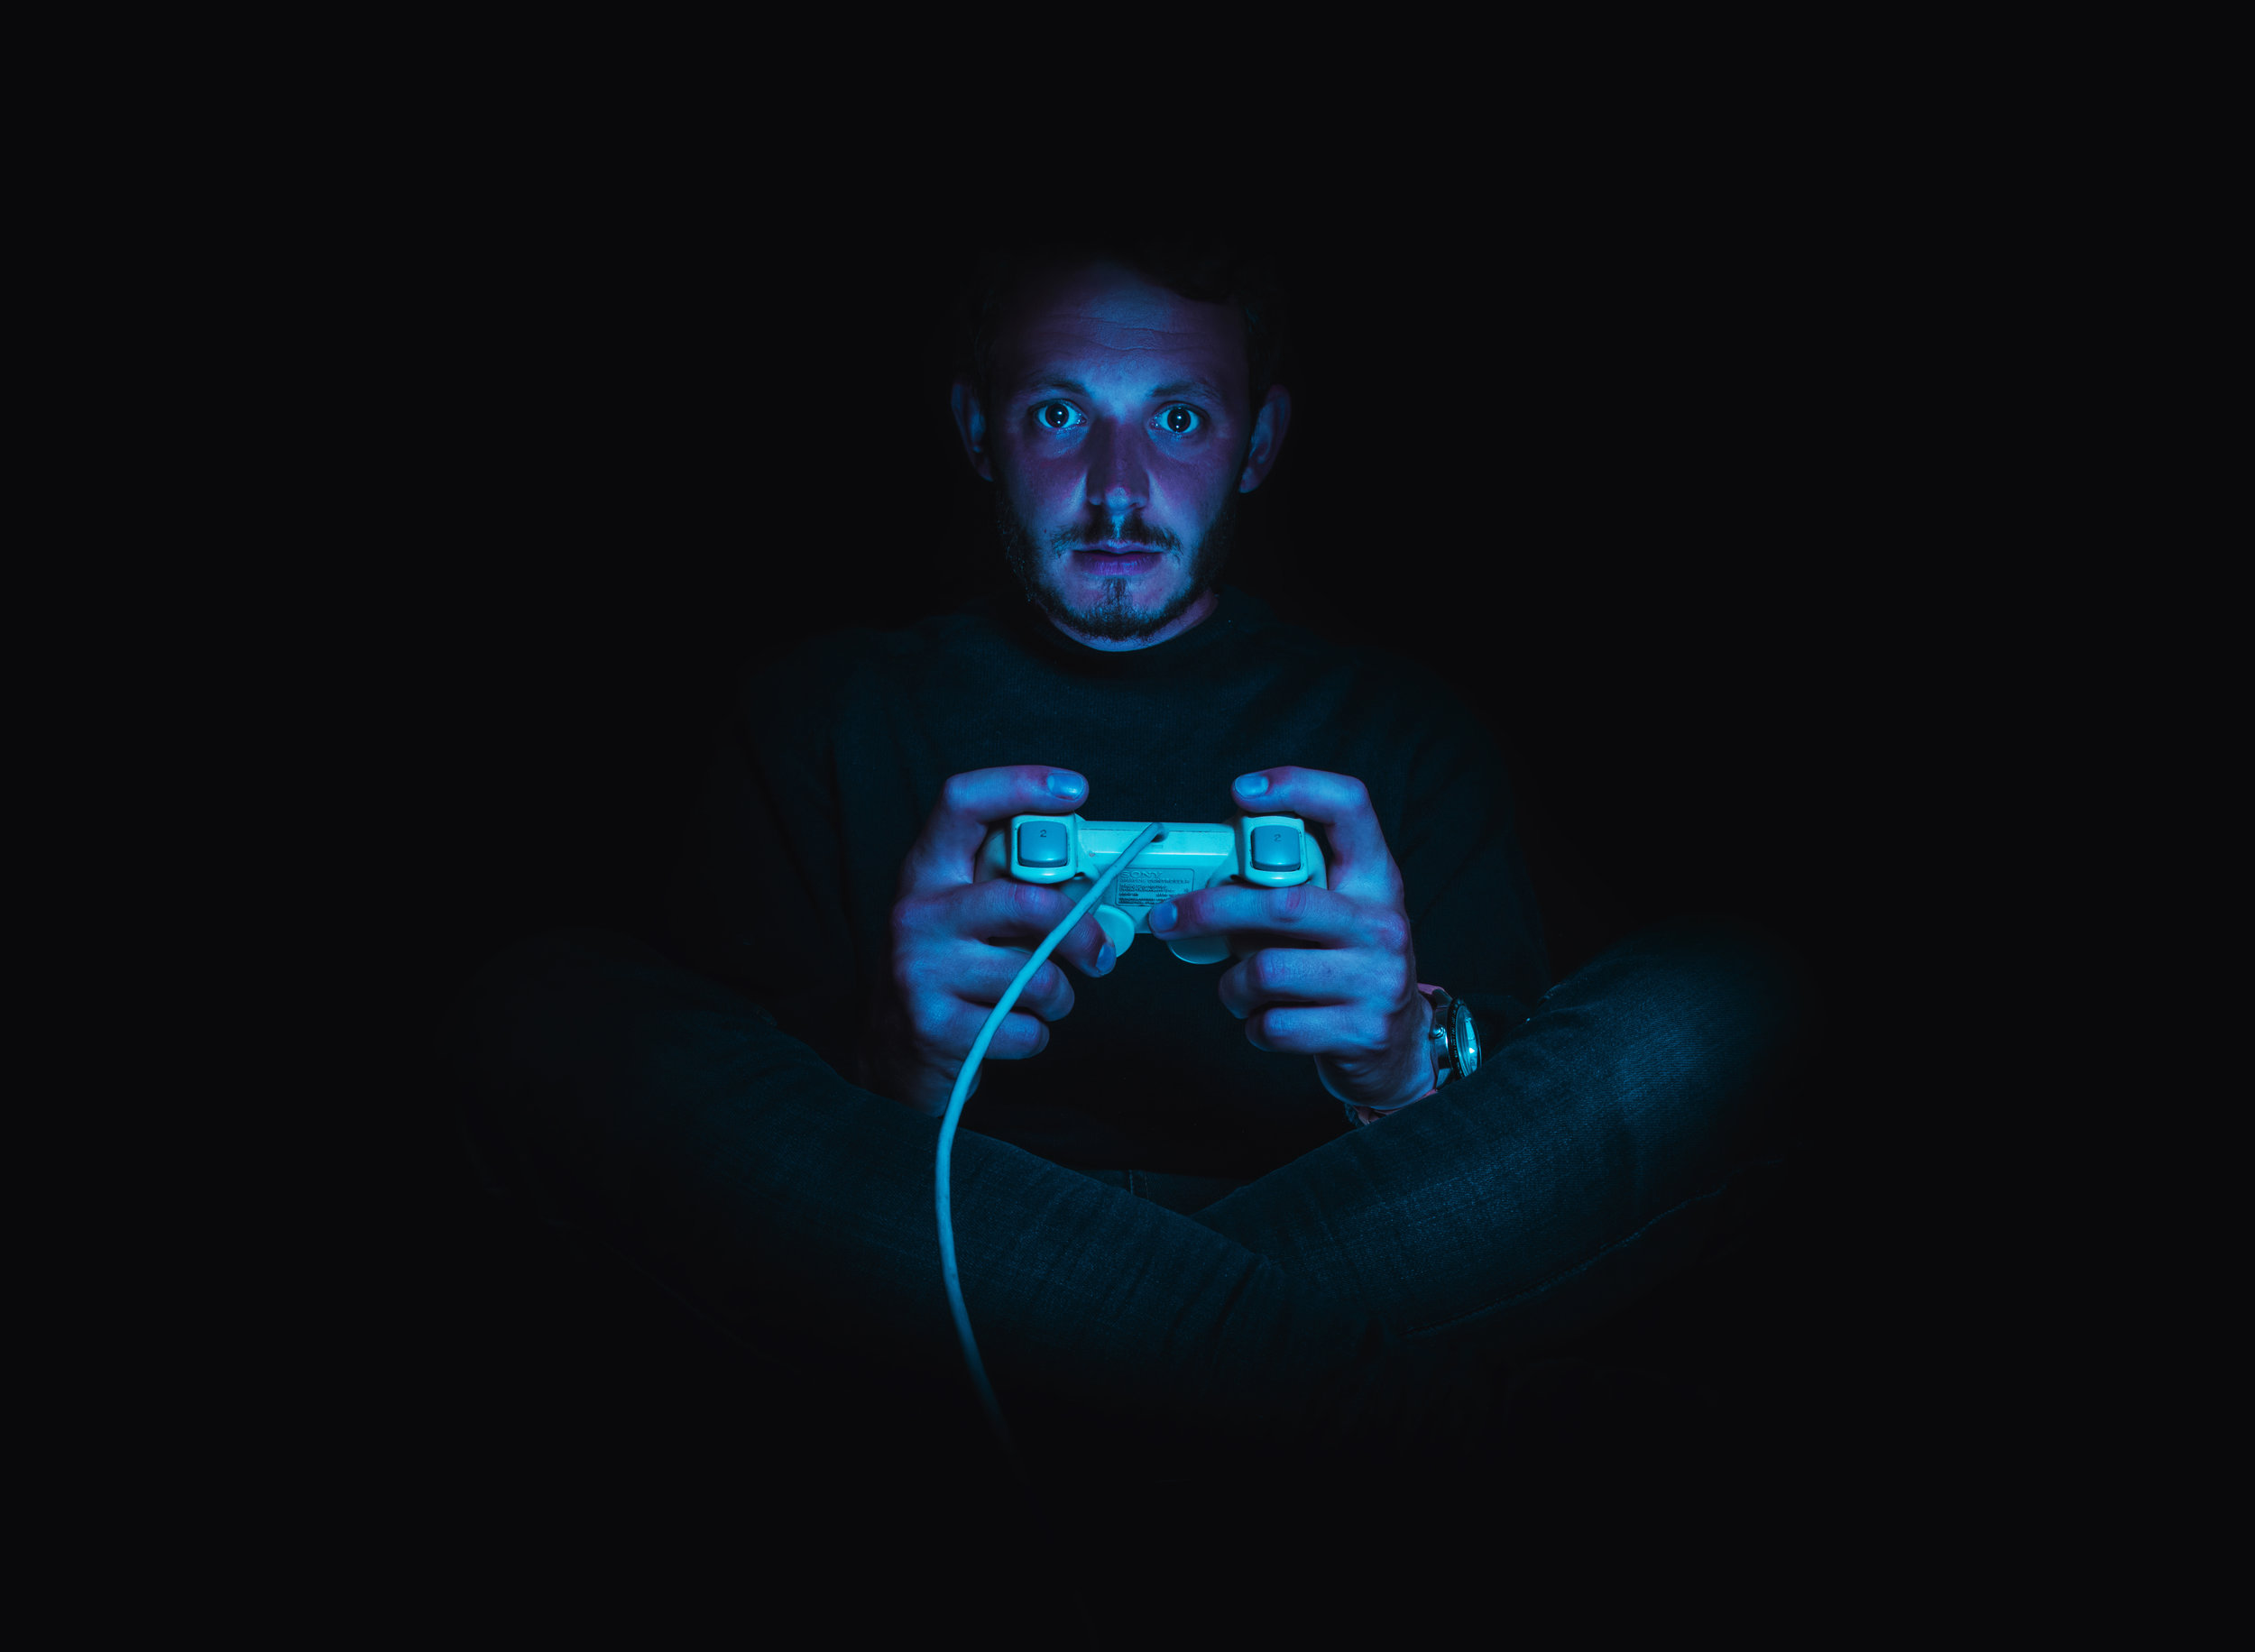 Gaming Disorder Recognised by World Health Organisation   World Health Organisation (WHO) recognises gaming disorder in the 11th Revision of the International Classification of Dieseases.  World Health Organisation, Sept 2018